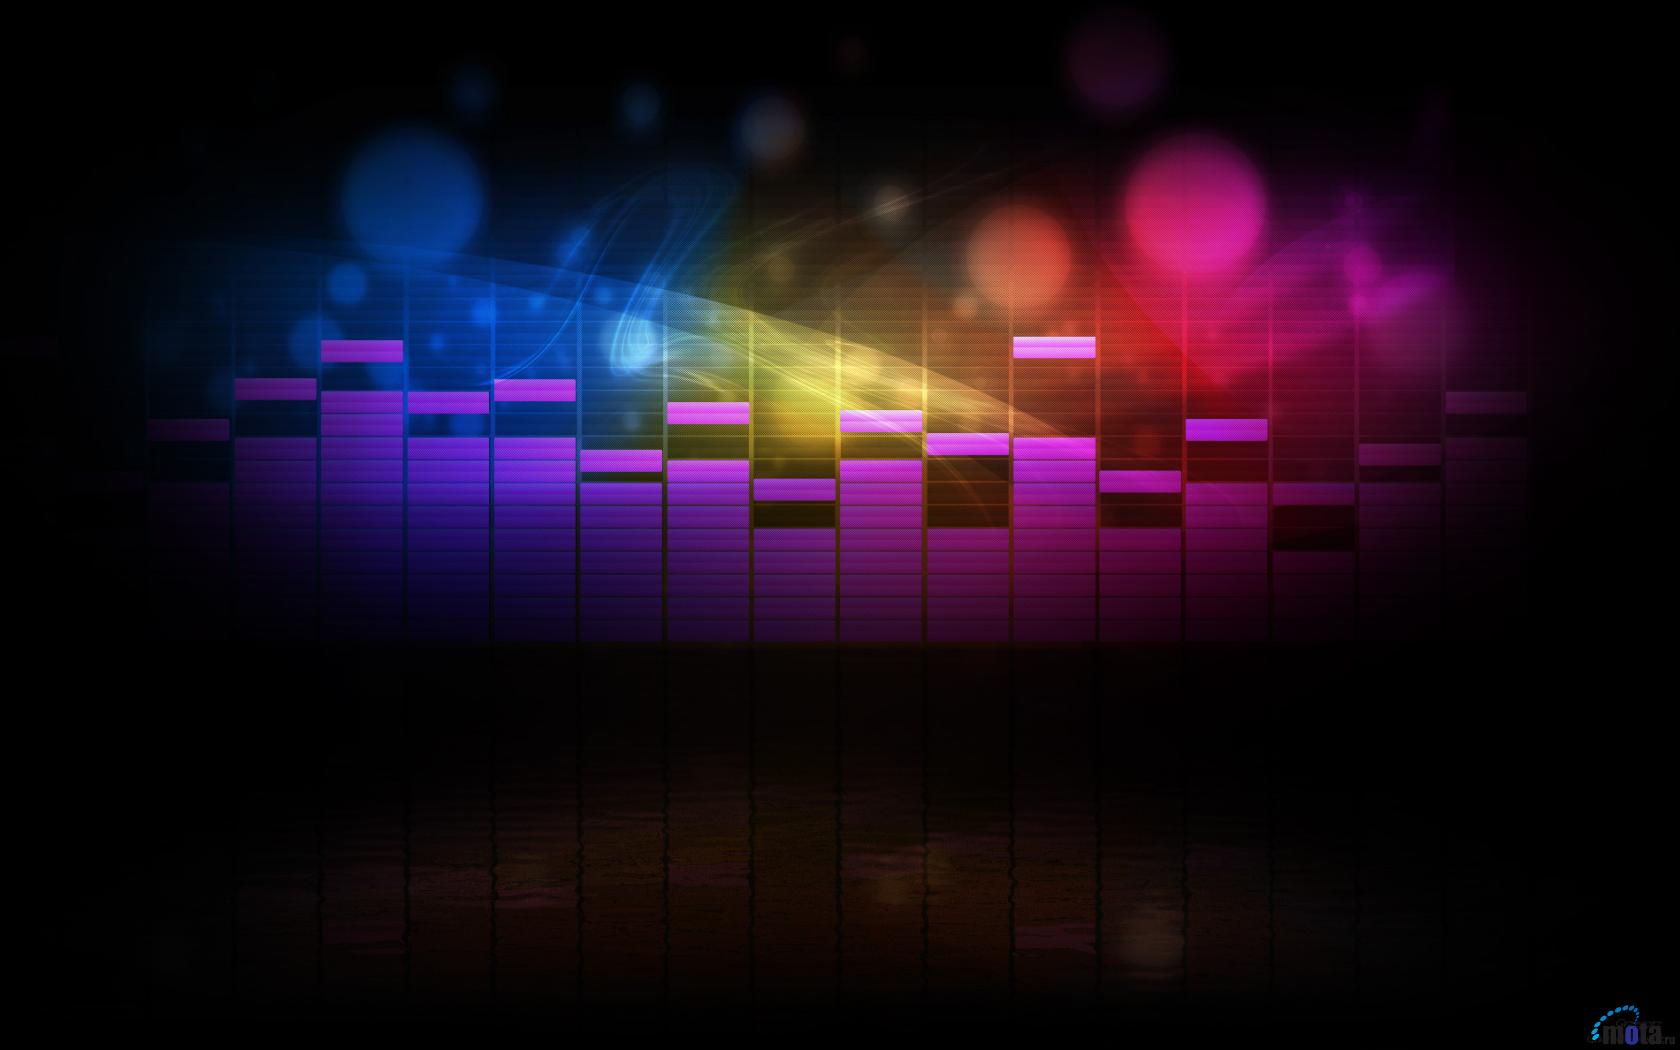 Sound Blocking Wallpaper Wallpapersafari